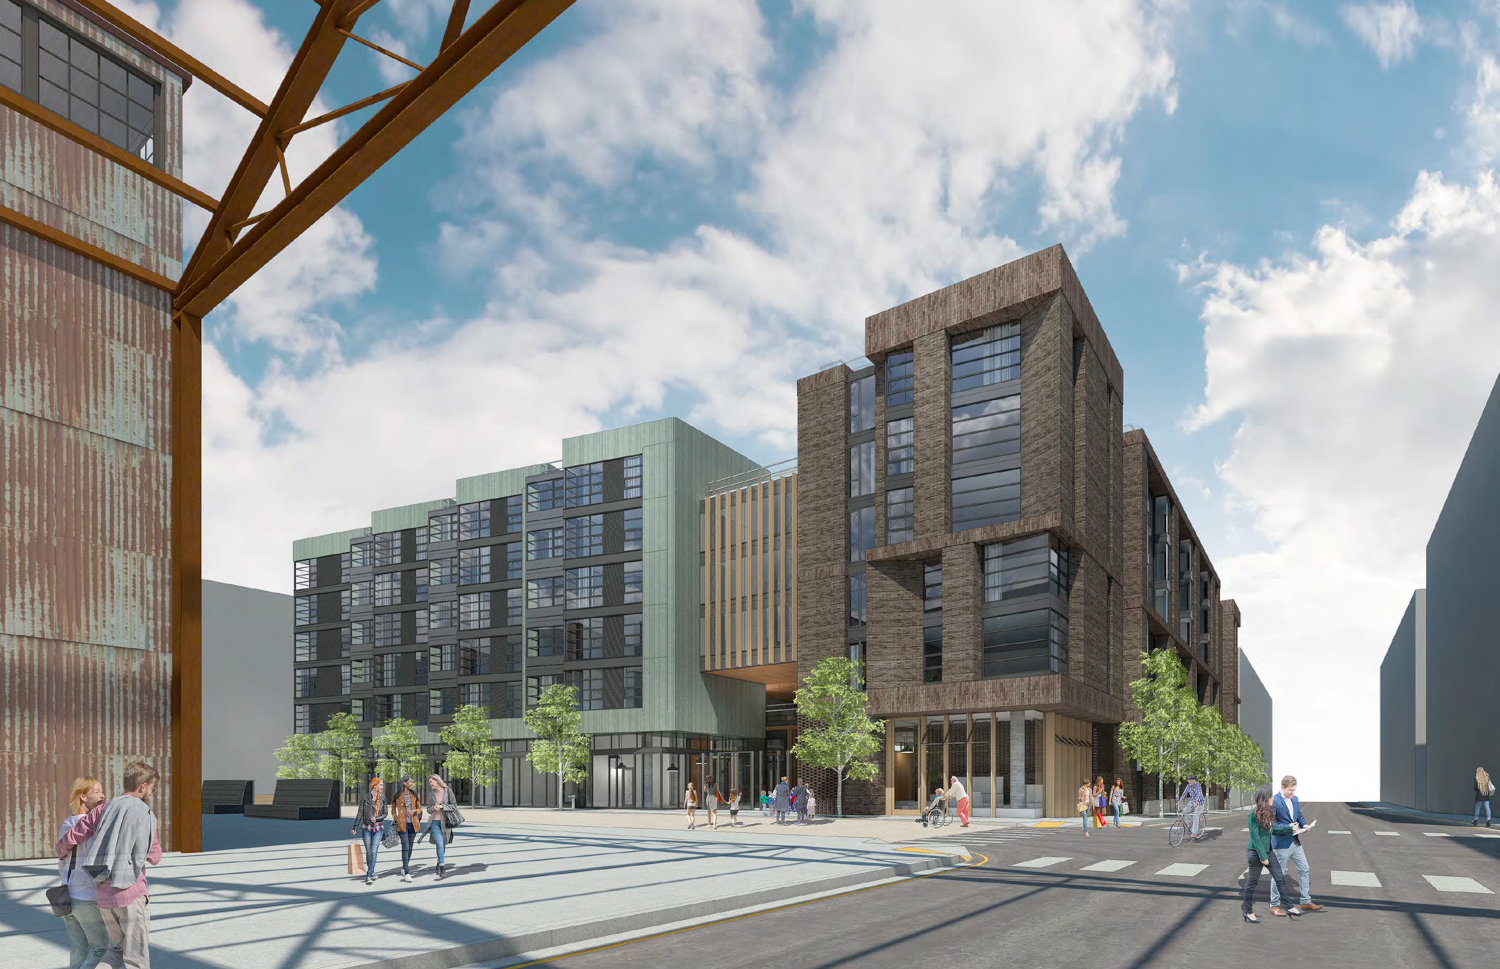 Pier 70 Parcel E2, design by Kennerly Architecture and Planning